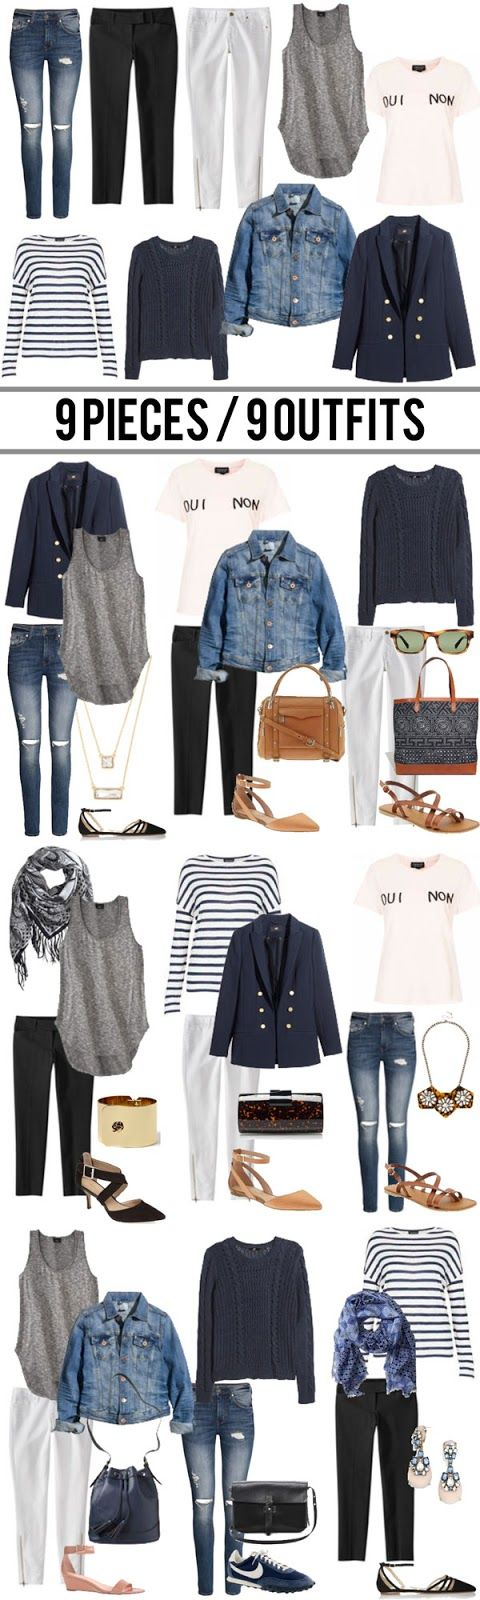 jillgg's good life (for less) | a west michigan style blog: 9 pieces / 9 outfits.